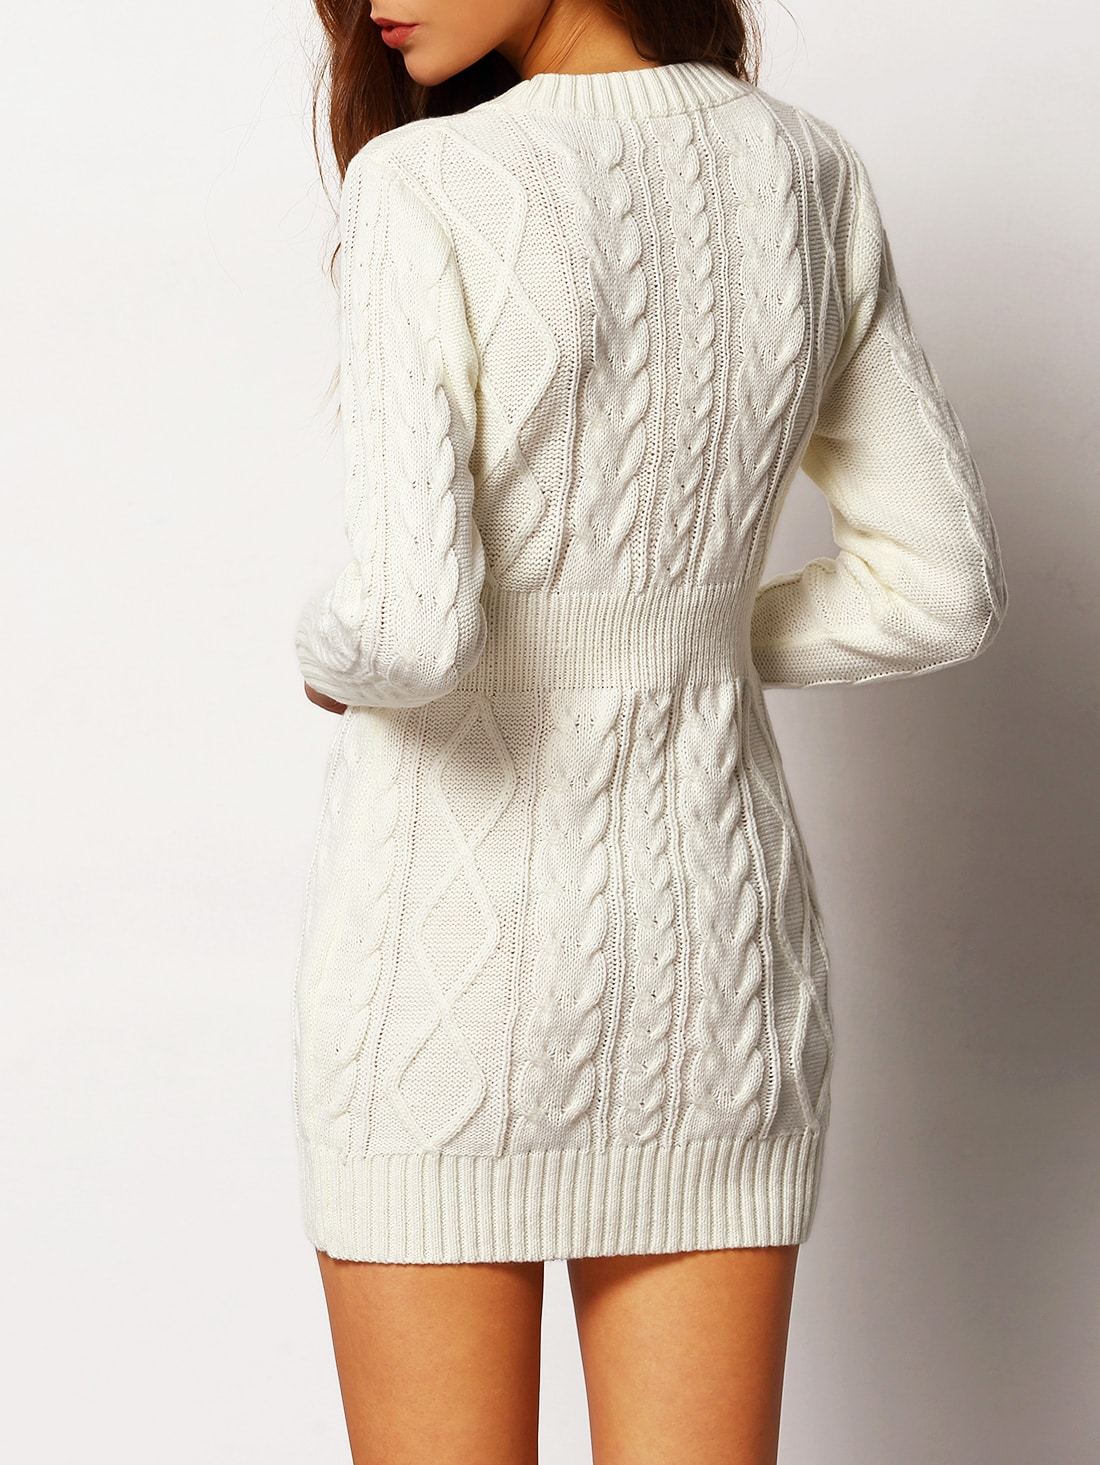 White Crew Neck Cable-knit Bodycon Sweater Dress -SheIn(Sheinside)